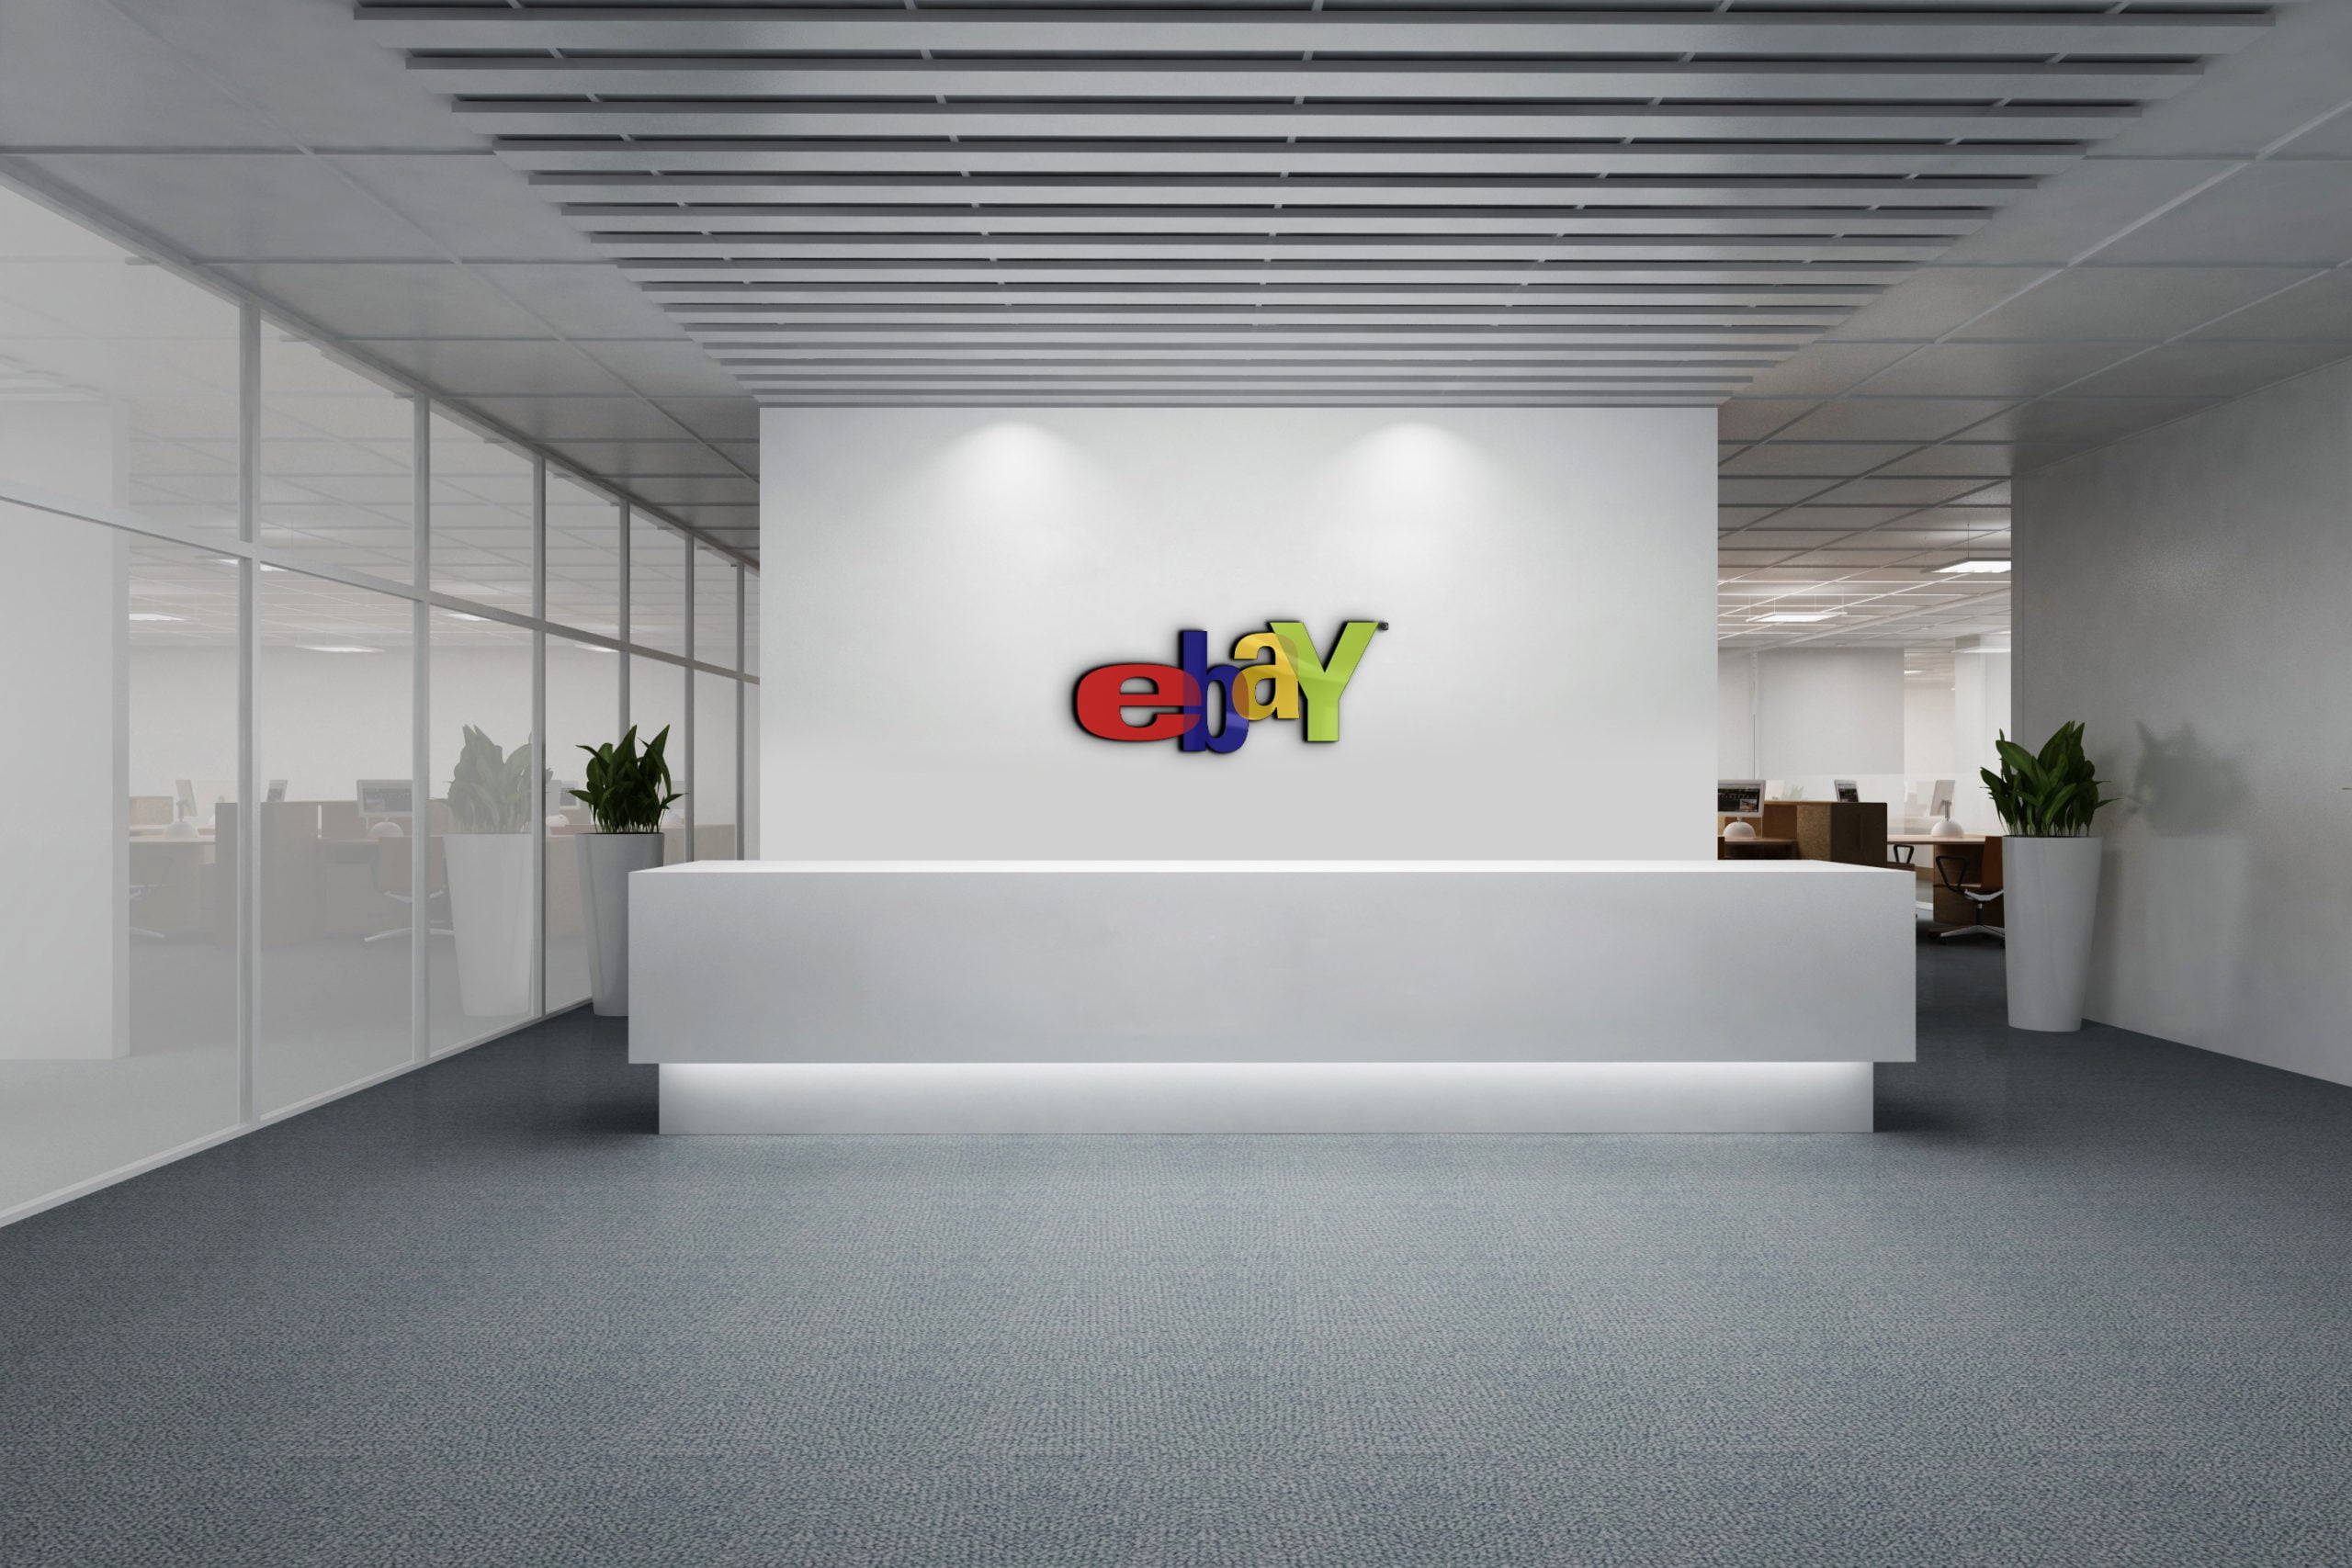 Ebay logo on white wall